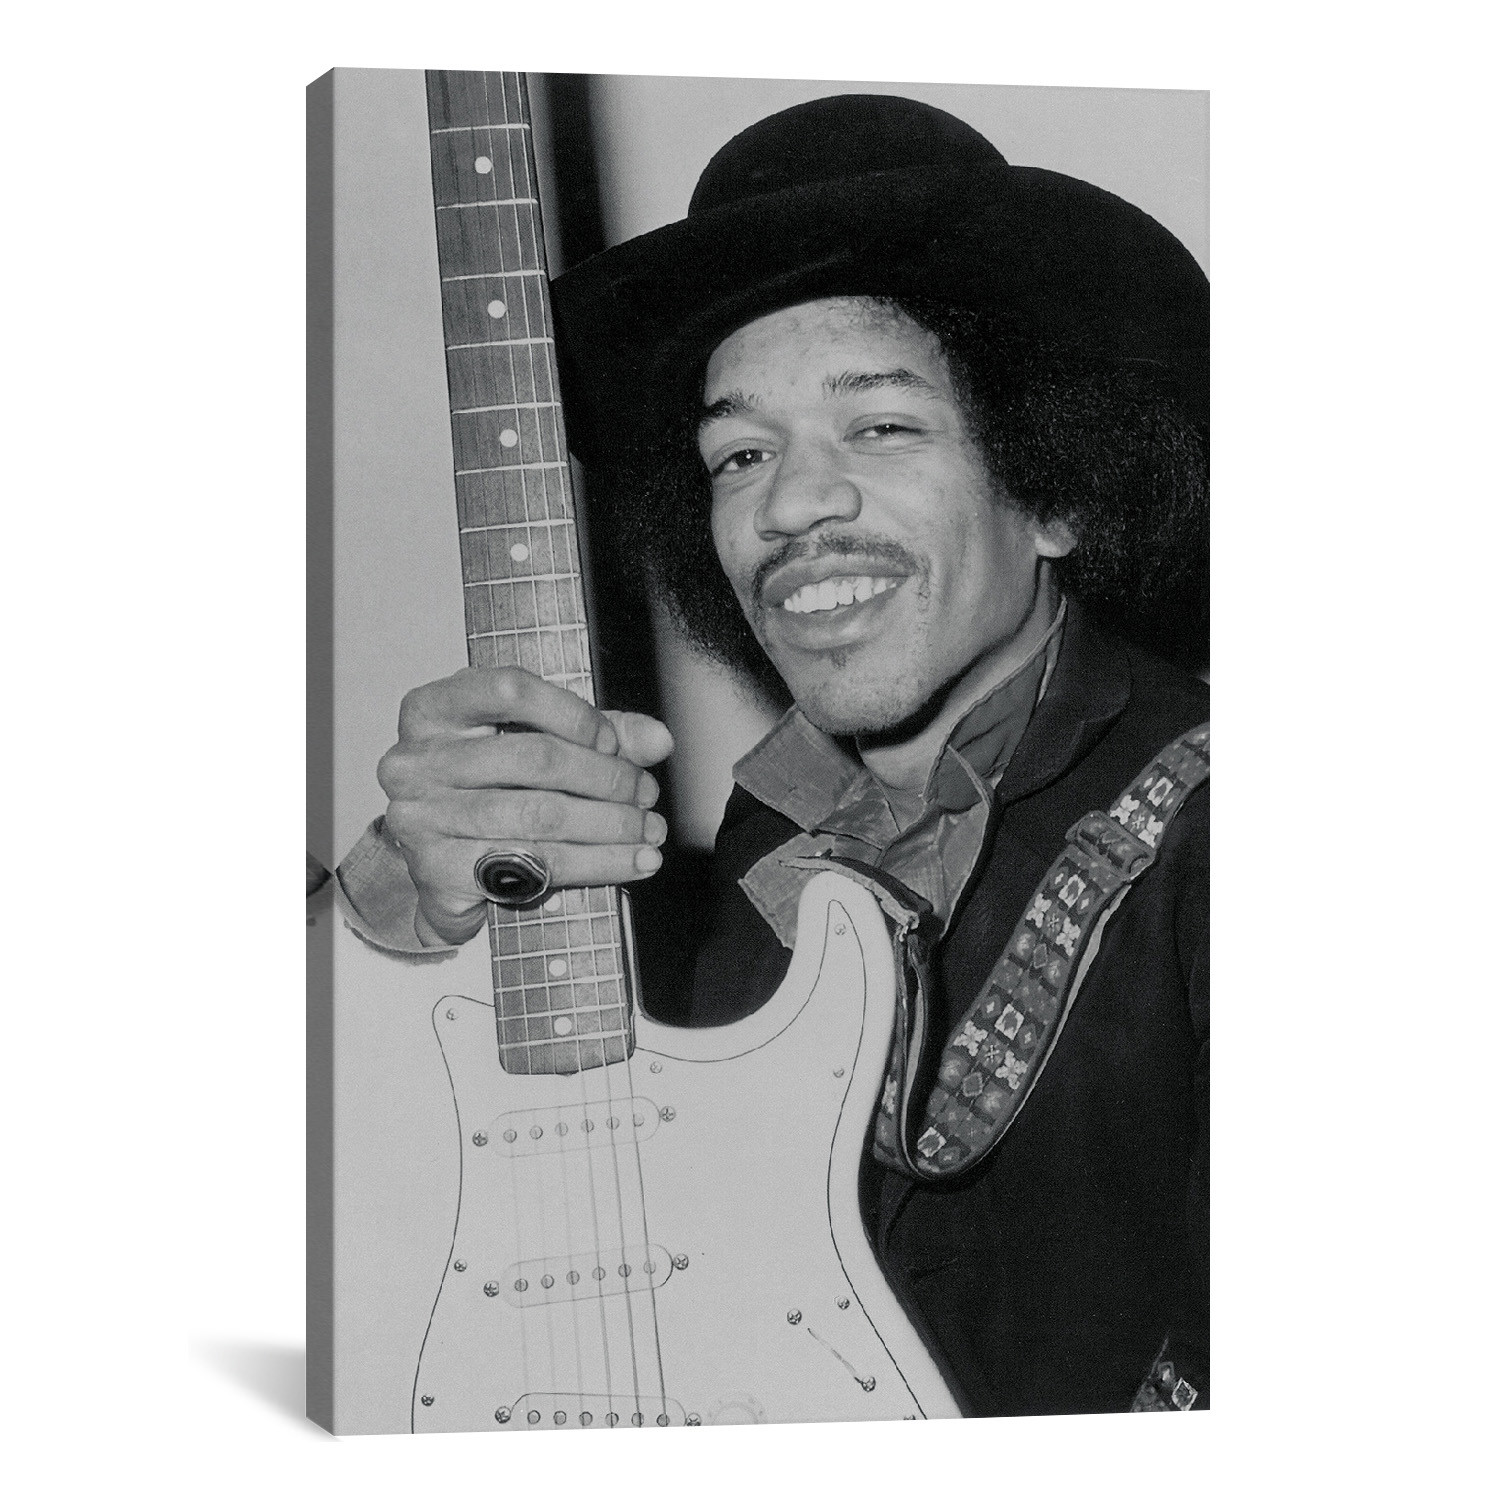 a smiling jimi hendrix holding his guitar 26 w x 18 h x rock film legends touch. Black Bedroom Furniture Sets. Home Design Ideas